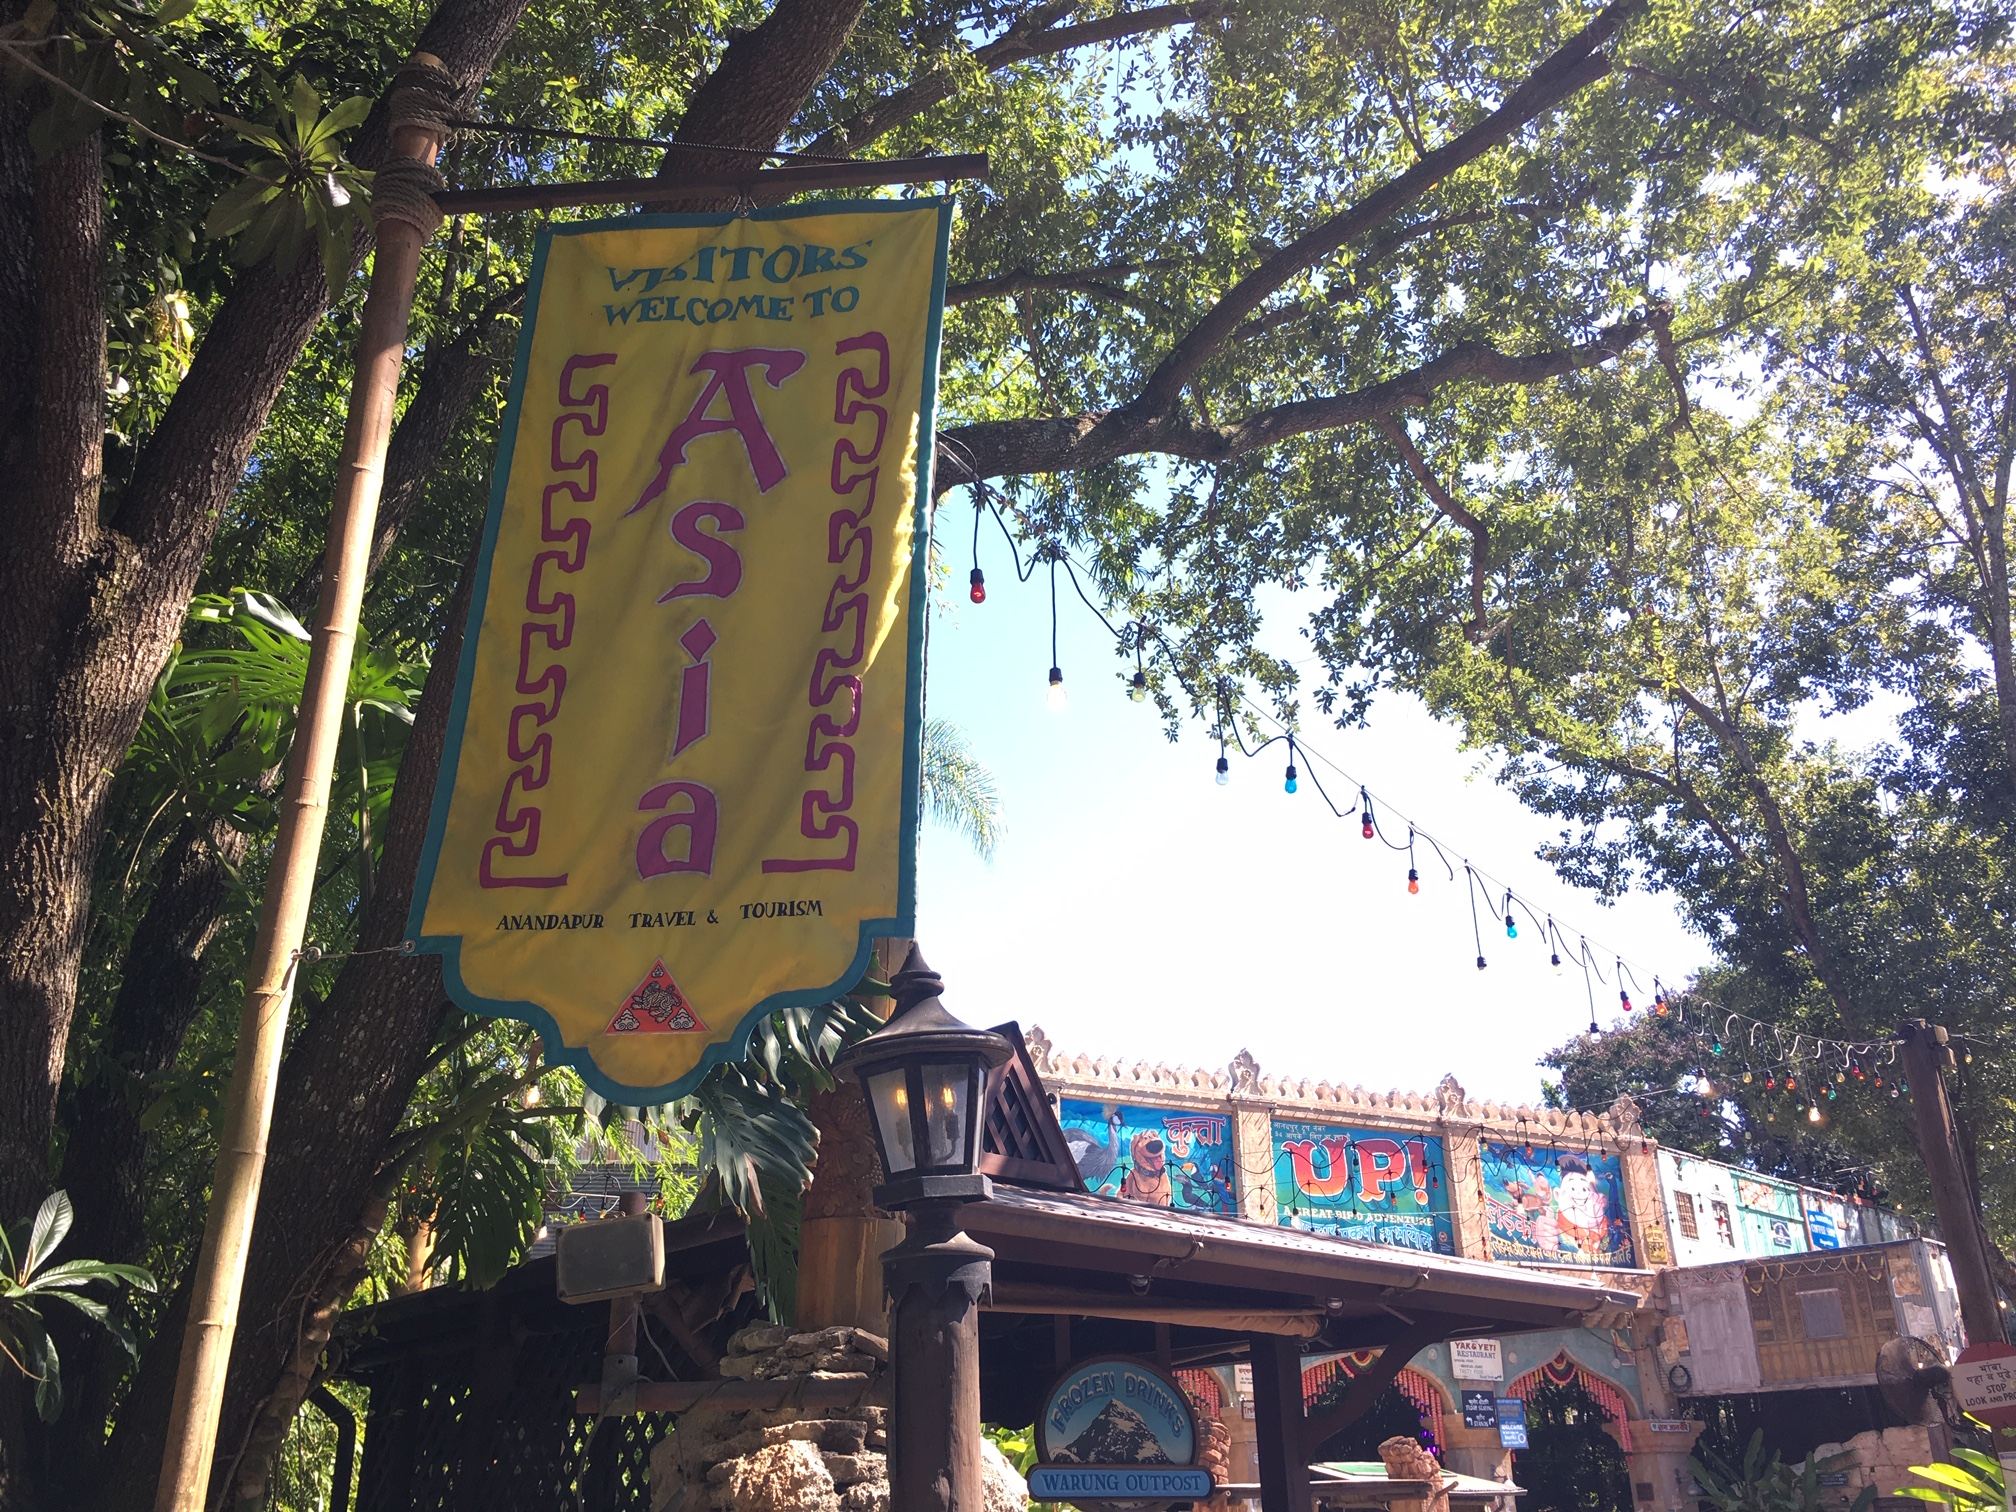 Located near Expedition Everest Disney World thrill ride - View of Disney's Animal Kingdom UP! Bird Show with Yellow Asia flag in the foreground